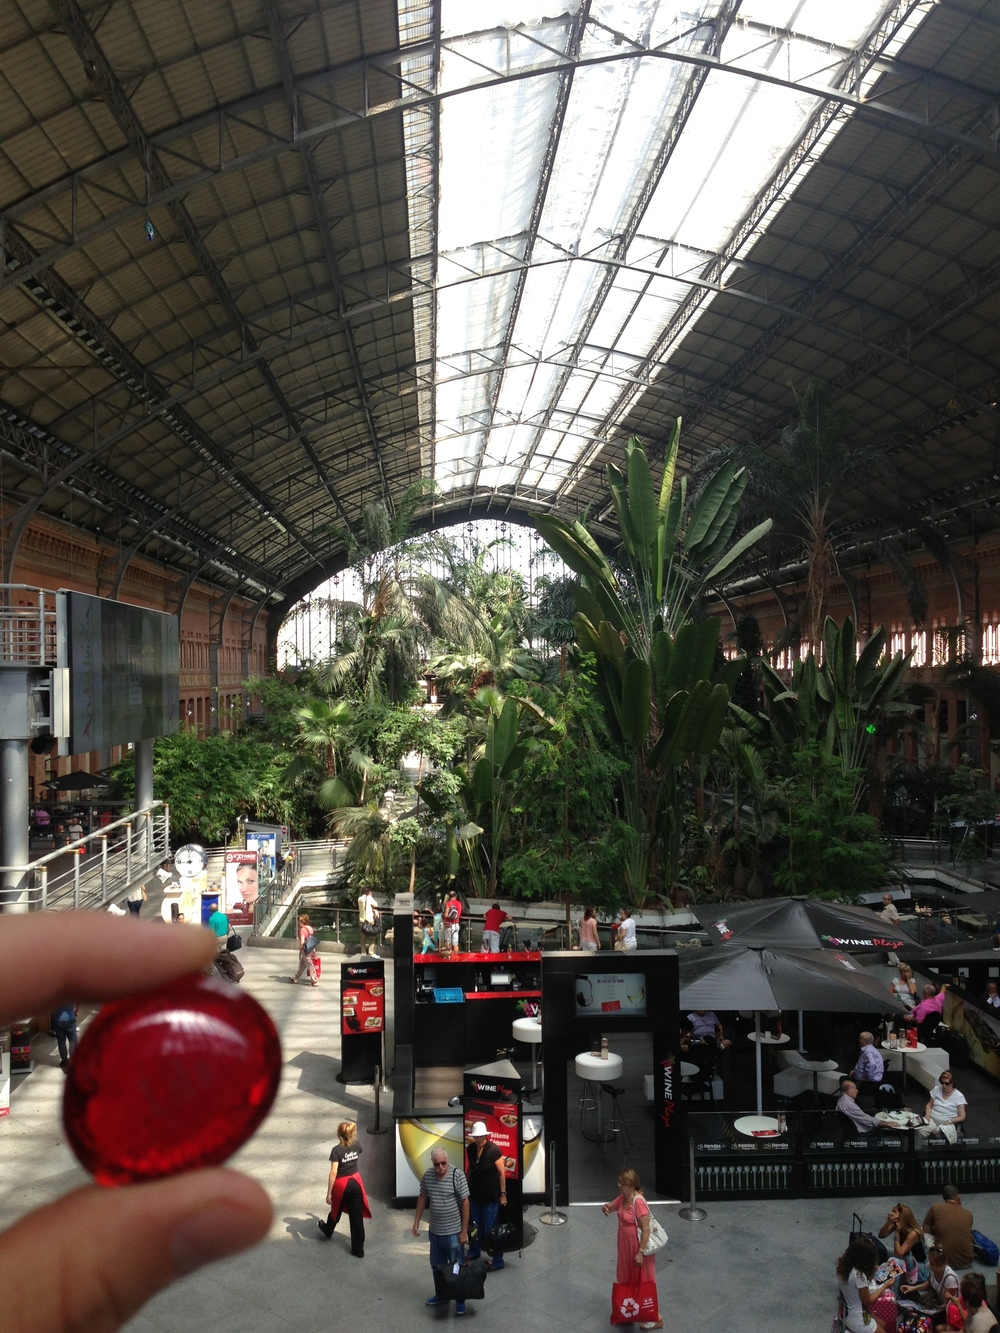 Lila at the Atocha Train Station